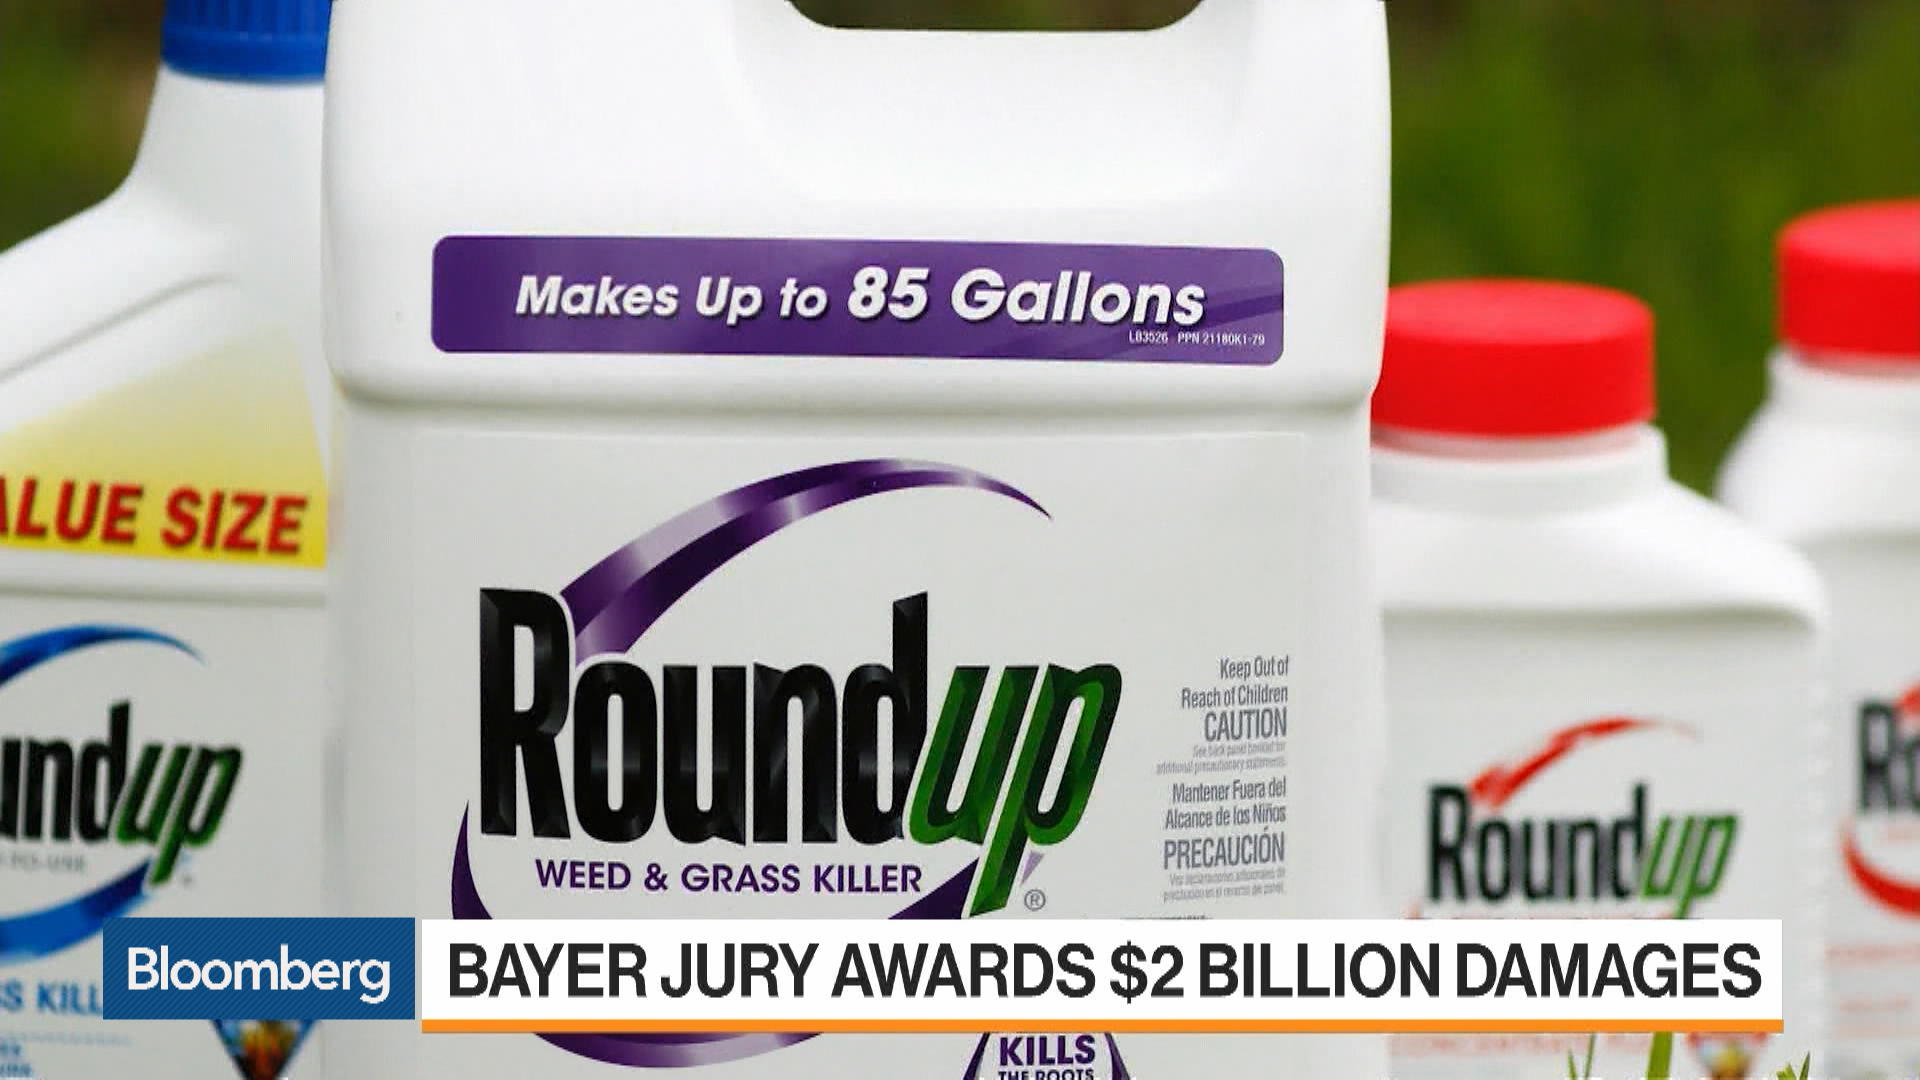 Bayer (BAYN) Lost 3rd Trial Over Roundup Cancer Claims - Bloomberg